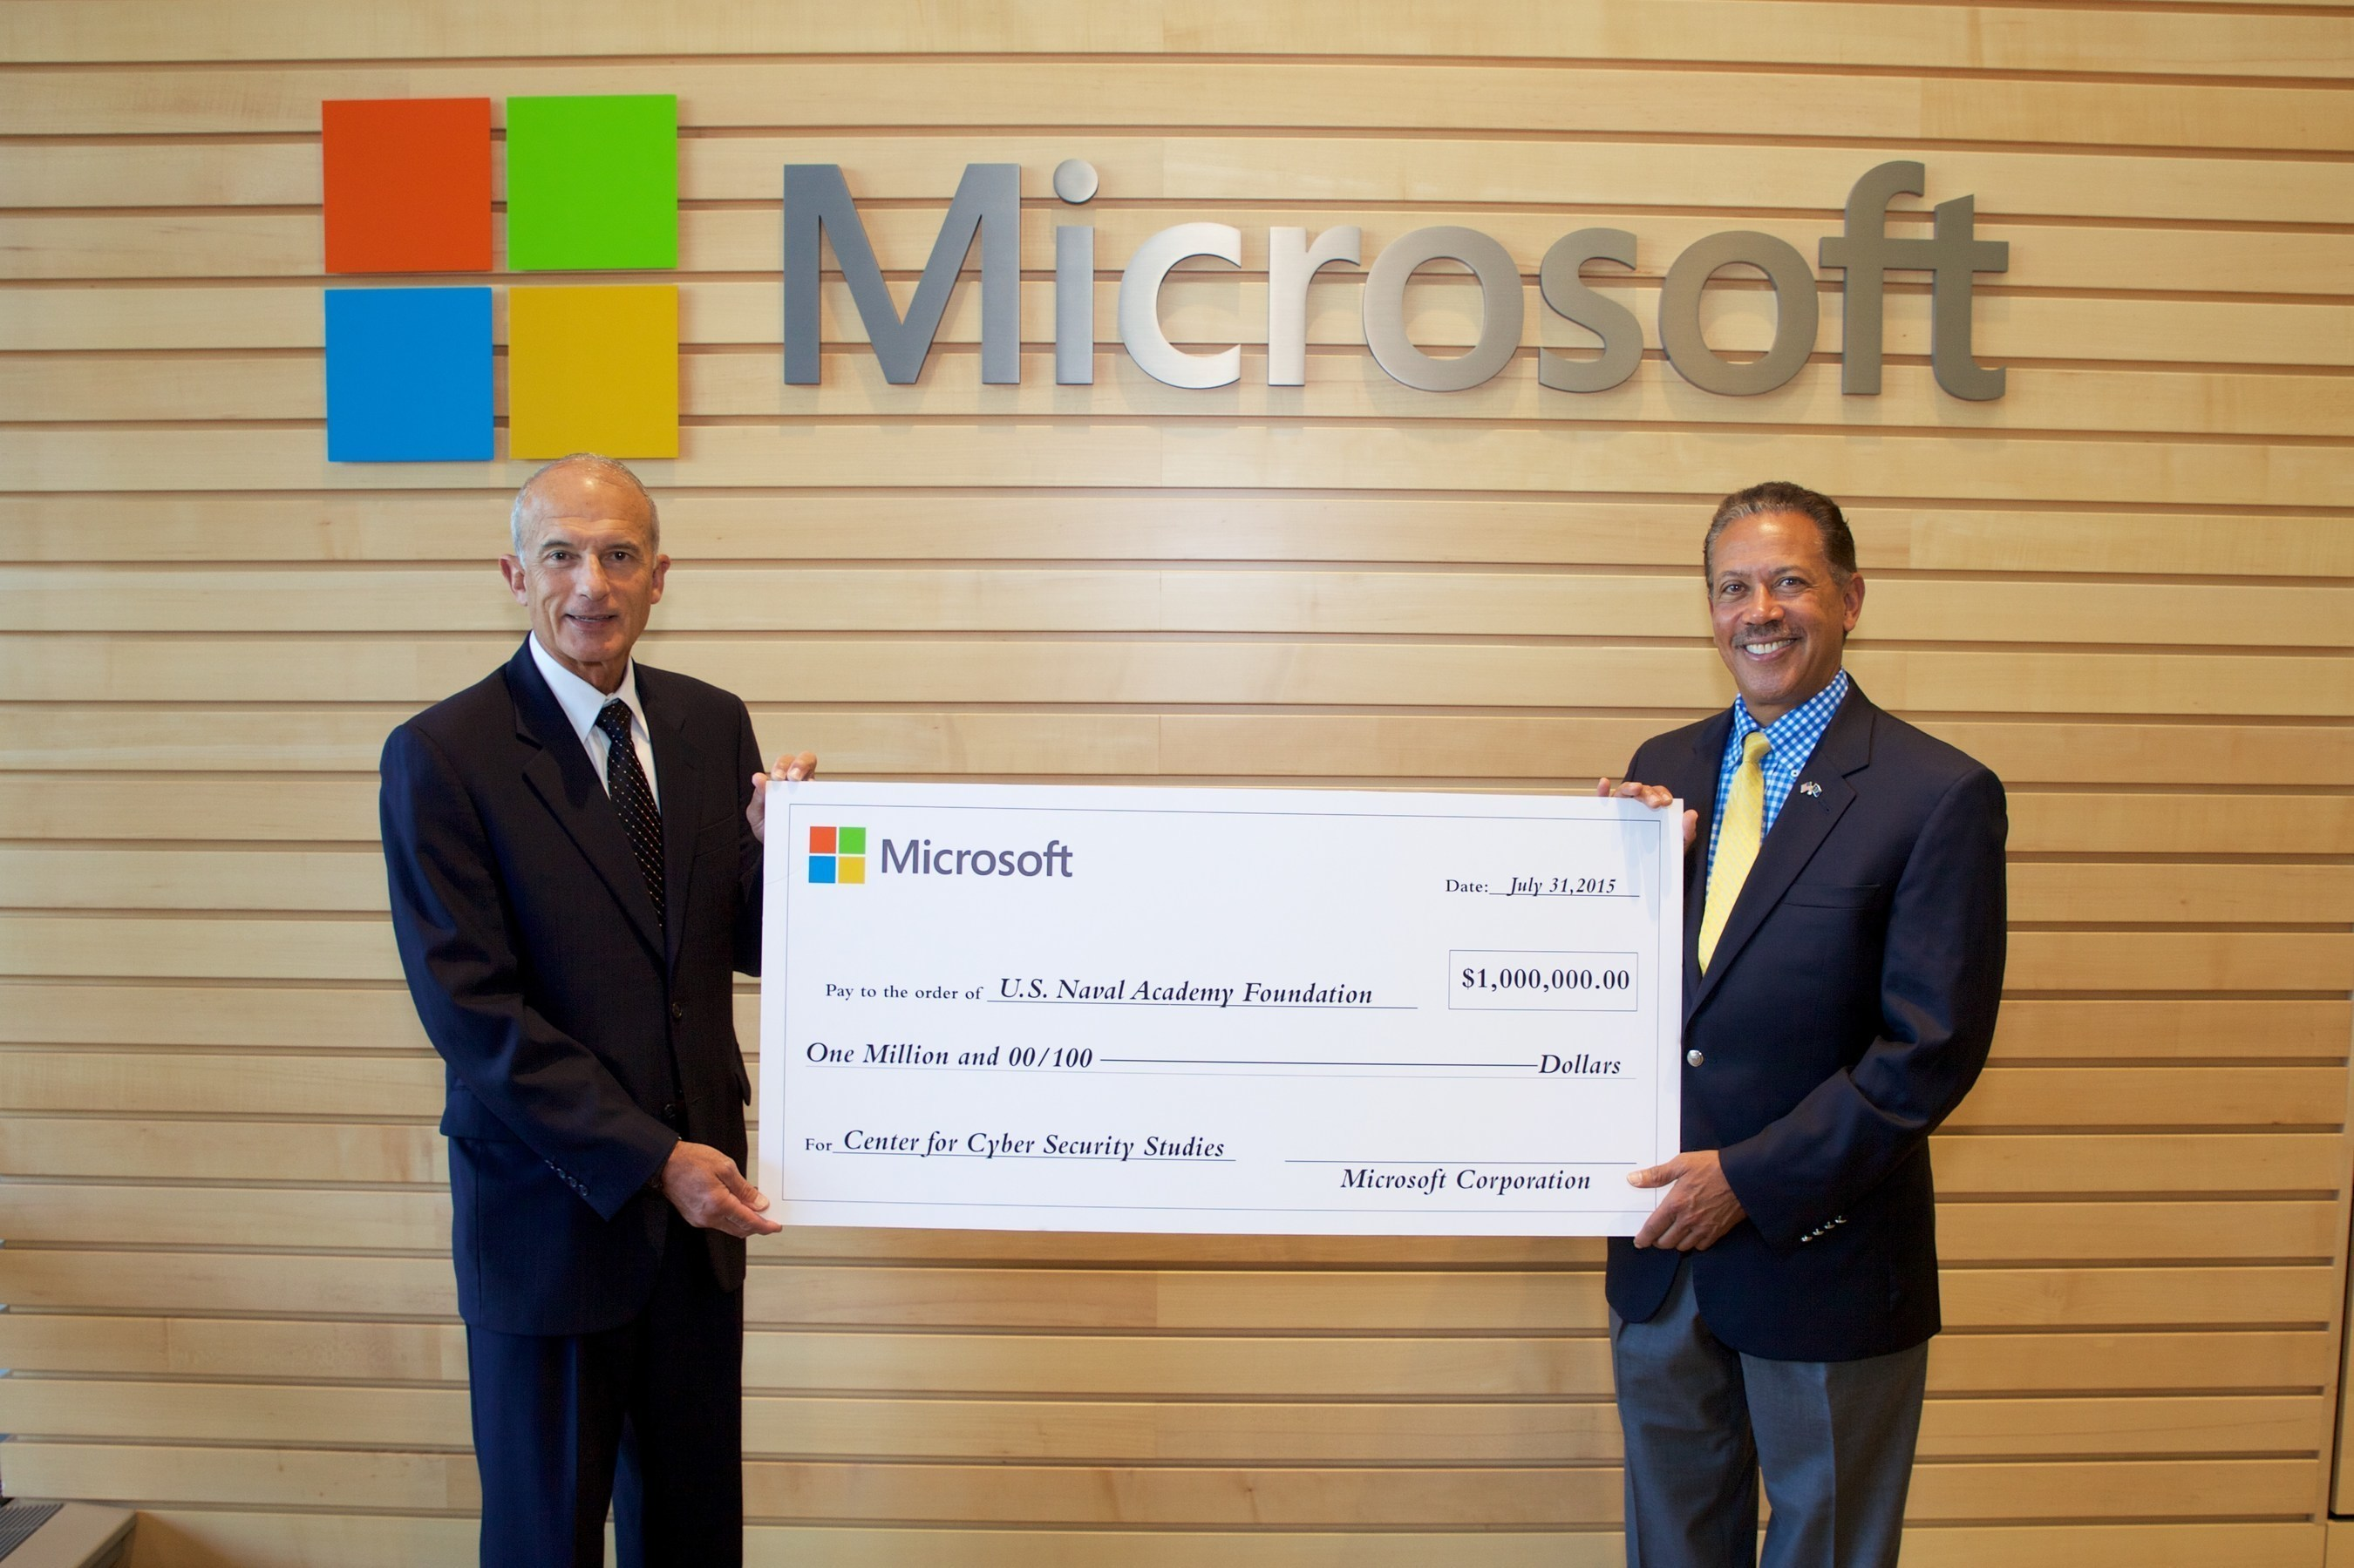 Chris Cortez, vice president, Microsoft Military Affairs, retired U.S. Marine Corps major general and father of Naval Academy graduate Christopher Cortez of the Class of 2002, presents Microsoft's gift to Naval Academy Foundation President and CEO Byron F. Marchant of the Class of 1978.